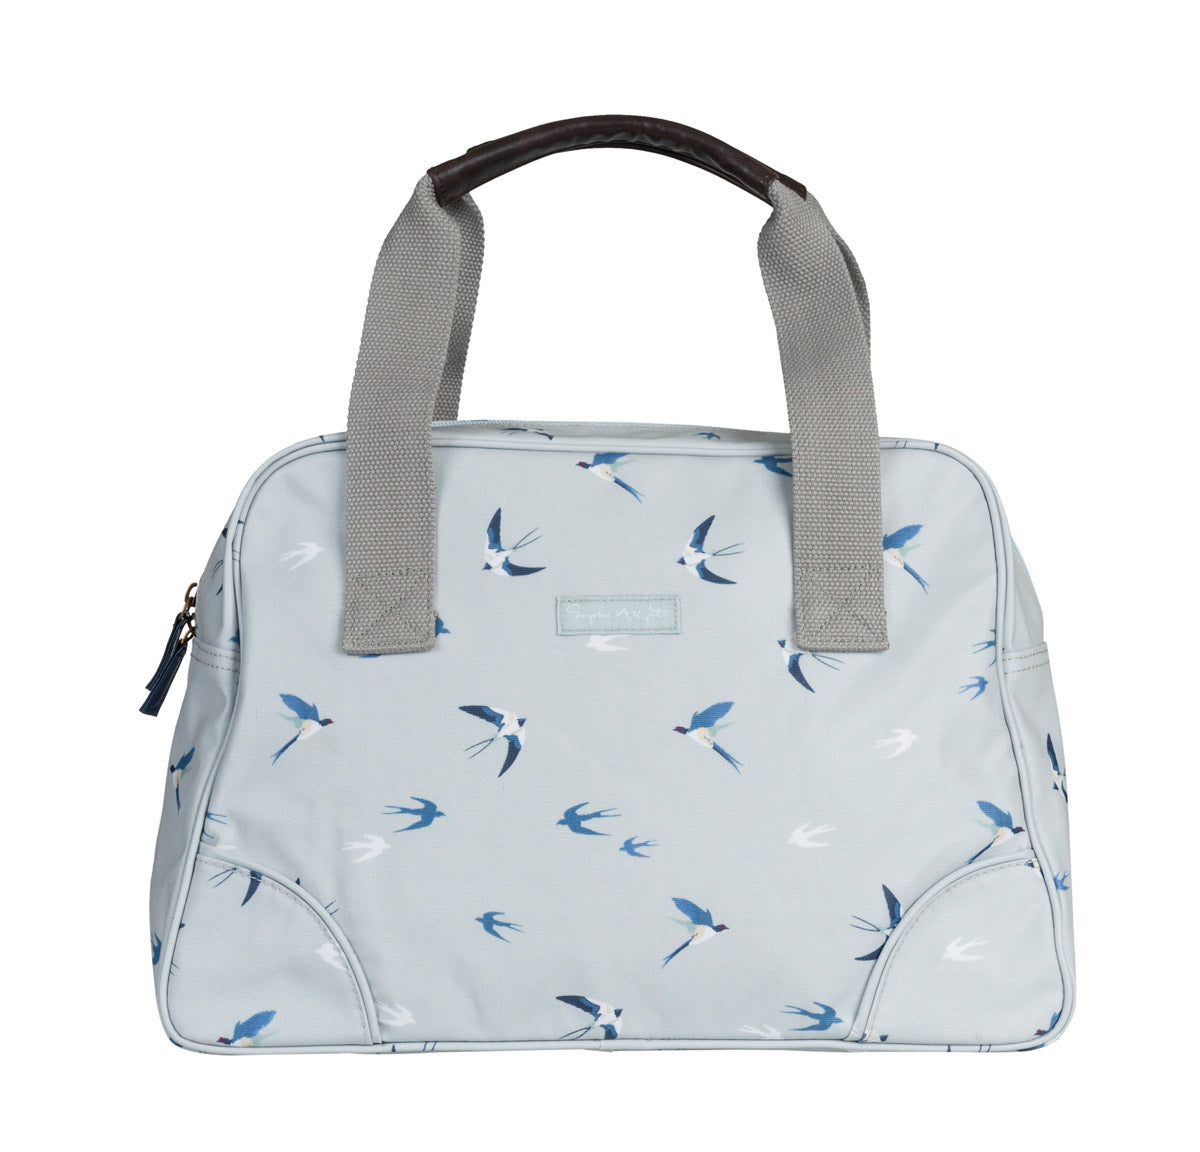 Swallow Oilcloth Stamford Bag